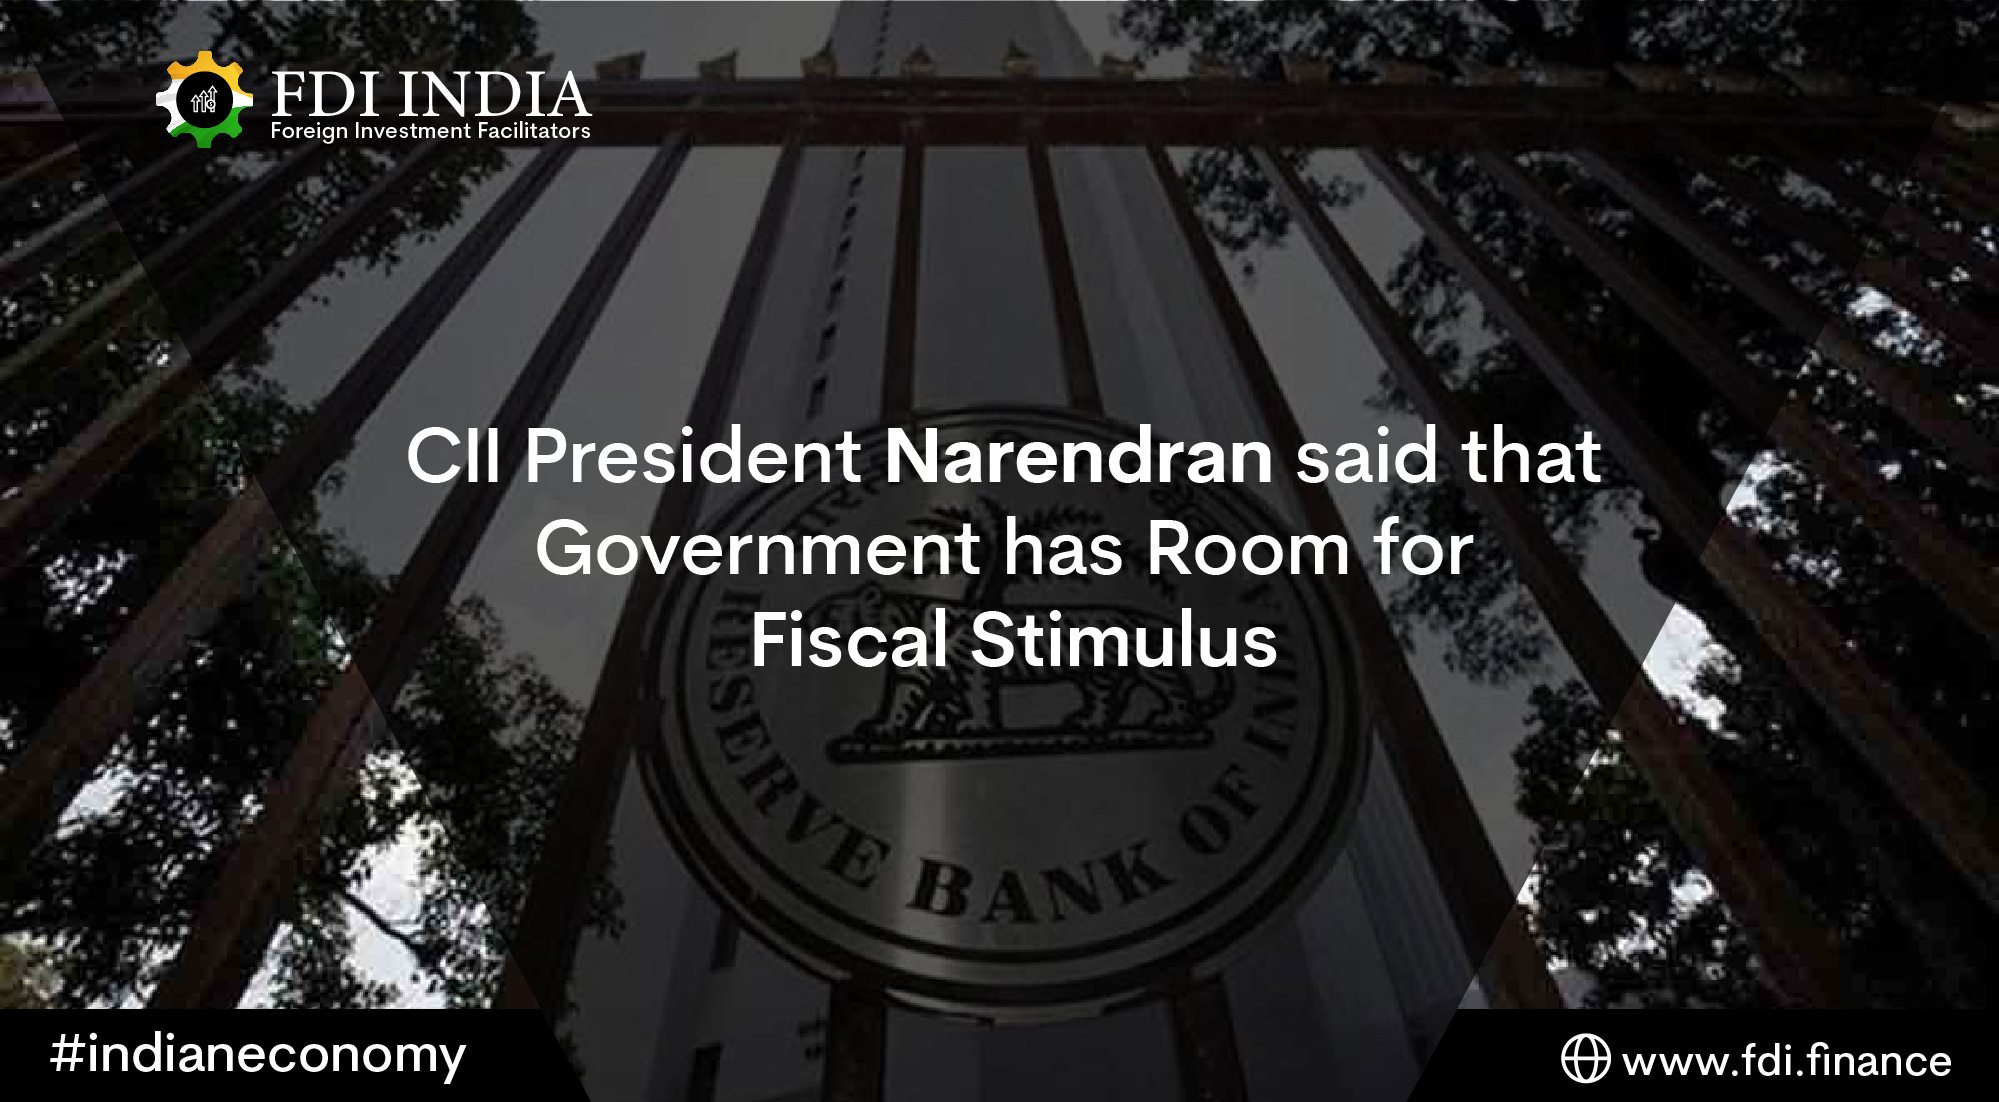 CII President Narendran Said That Government Has Room for Fiscal Stimulus